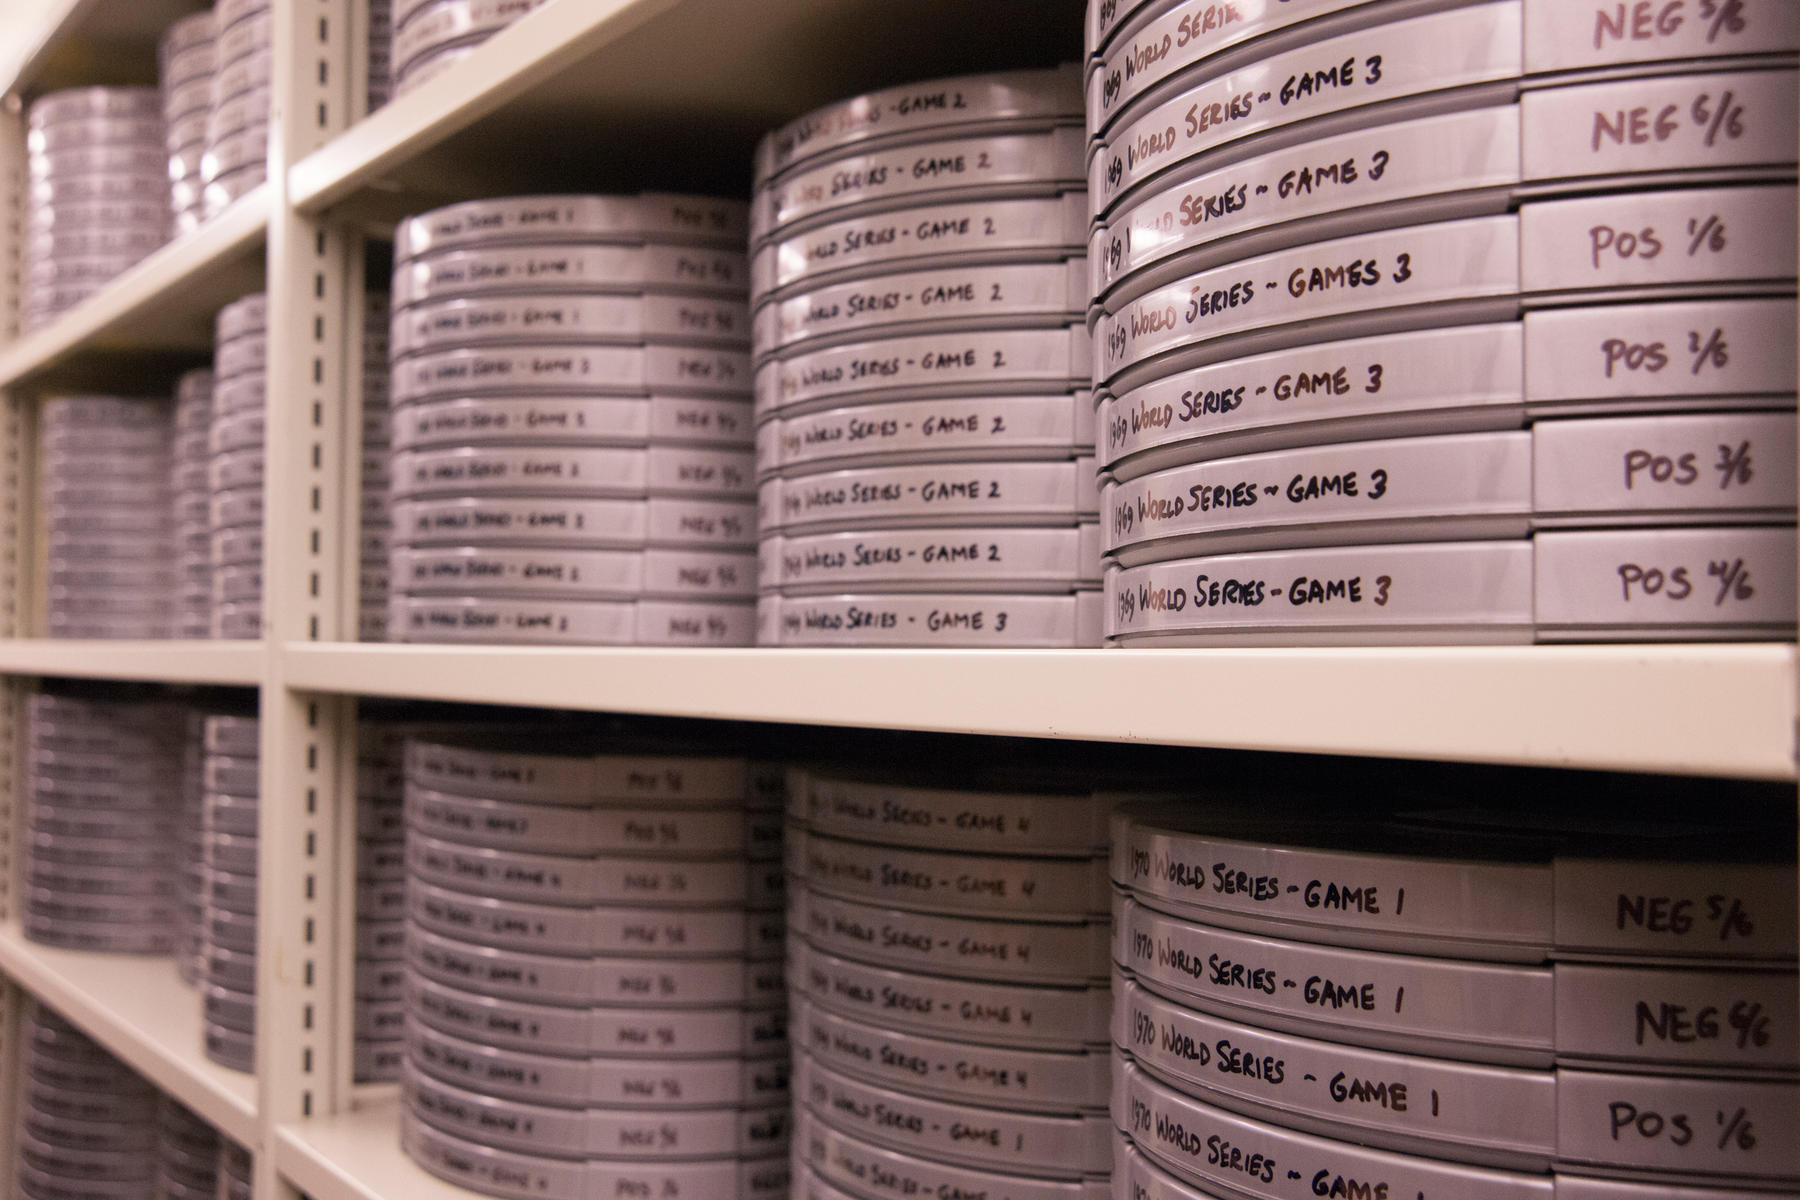 The Recorded Media Collection contains approximately 14,000 hours of moving images and sound recordings. (Milo Stewart, Jr. / National Baseball Hall of Fame)